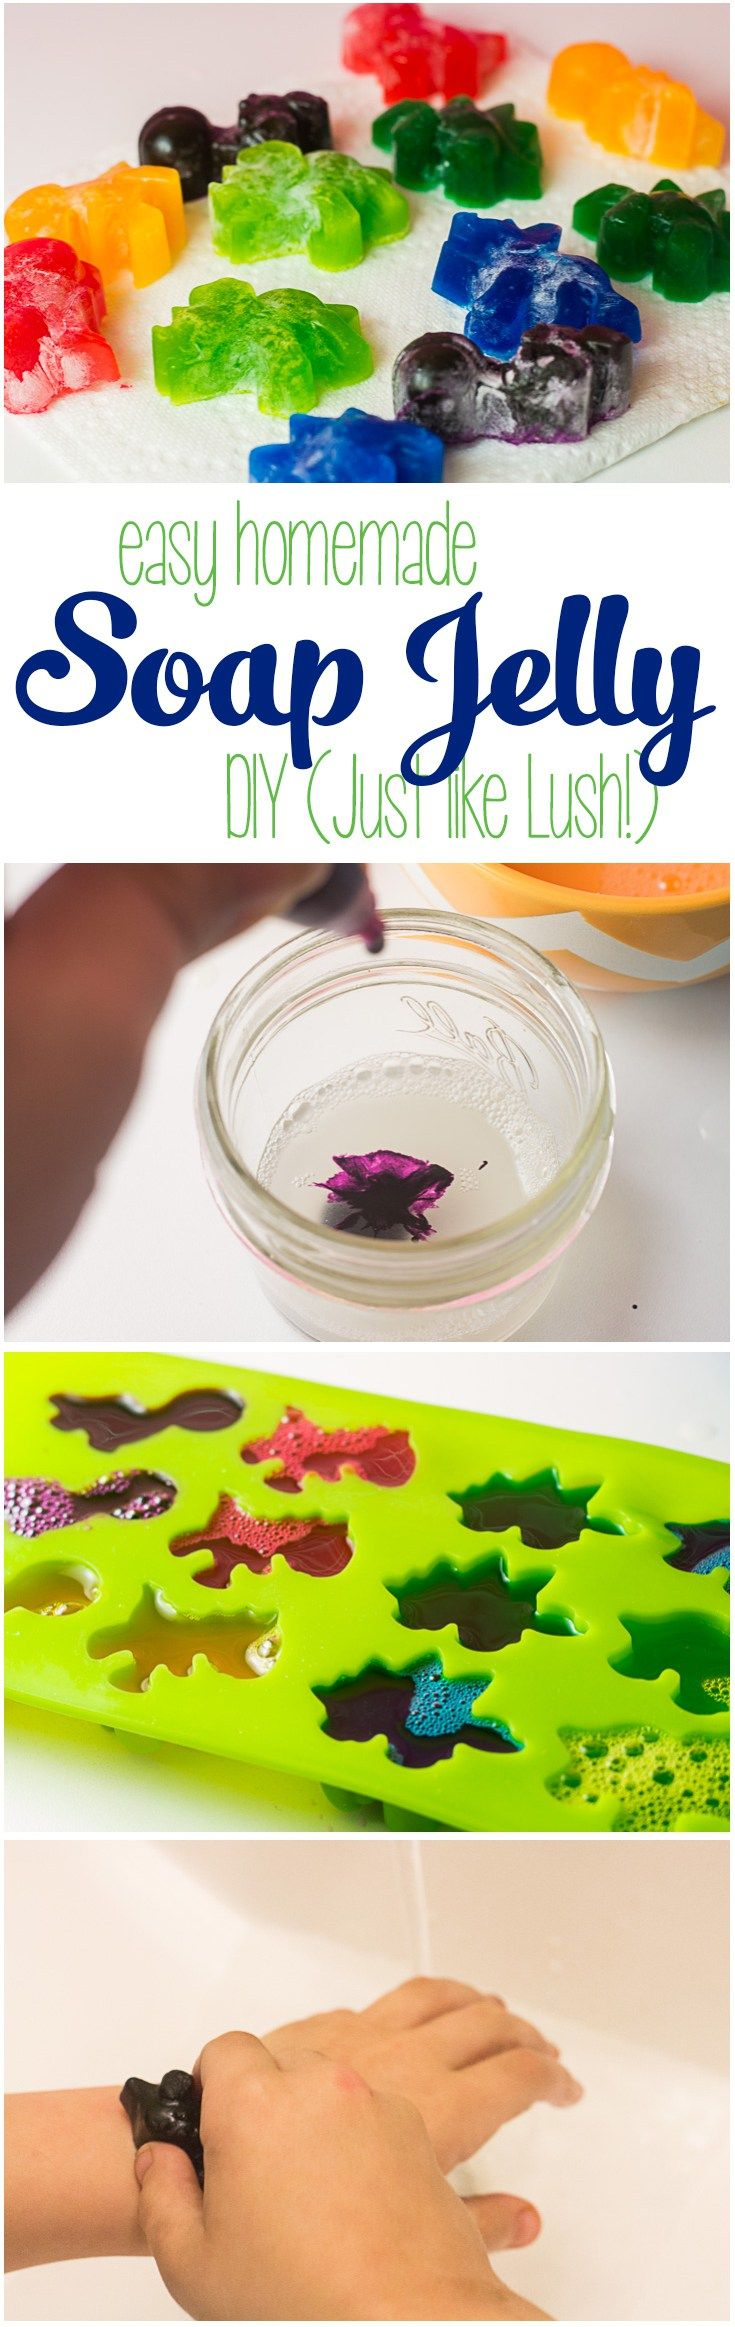 If you love Shower Jelly like the kind you find at LUSH, you'll love this easy-to-make DIY Soap Jelly that is as fun to make as it is to bathe with! It's nice and cool for showering off in the summertime, and a fun way to get clean after playing in the mud and dirt. What kid wouldn't love their own jelly soap?   DIY Soap Jelly   Jelly Soap Homemade   How to Make LUSH Shower Jelly  